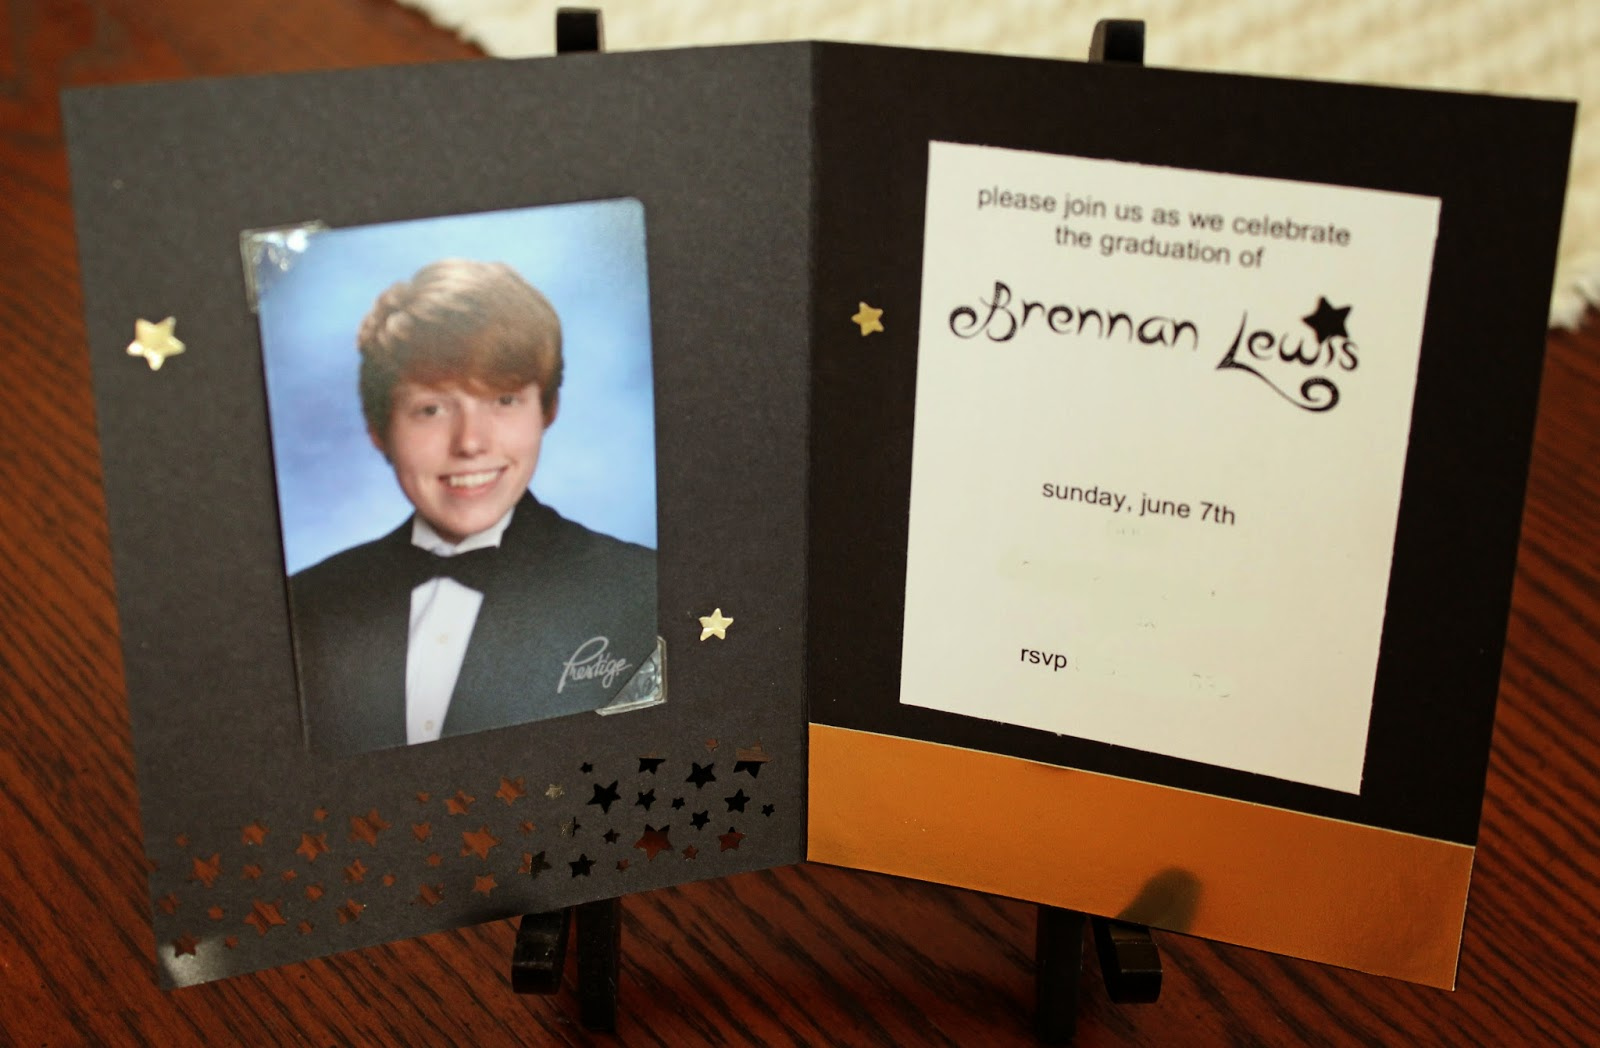 Graduation announcements made by hand